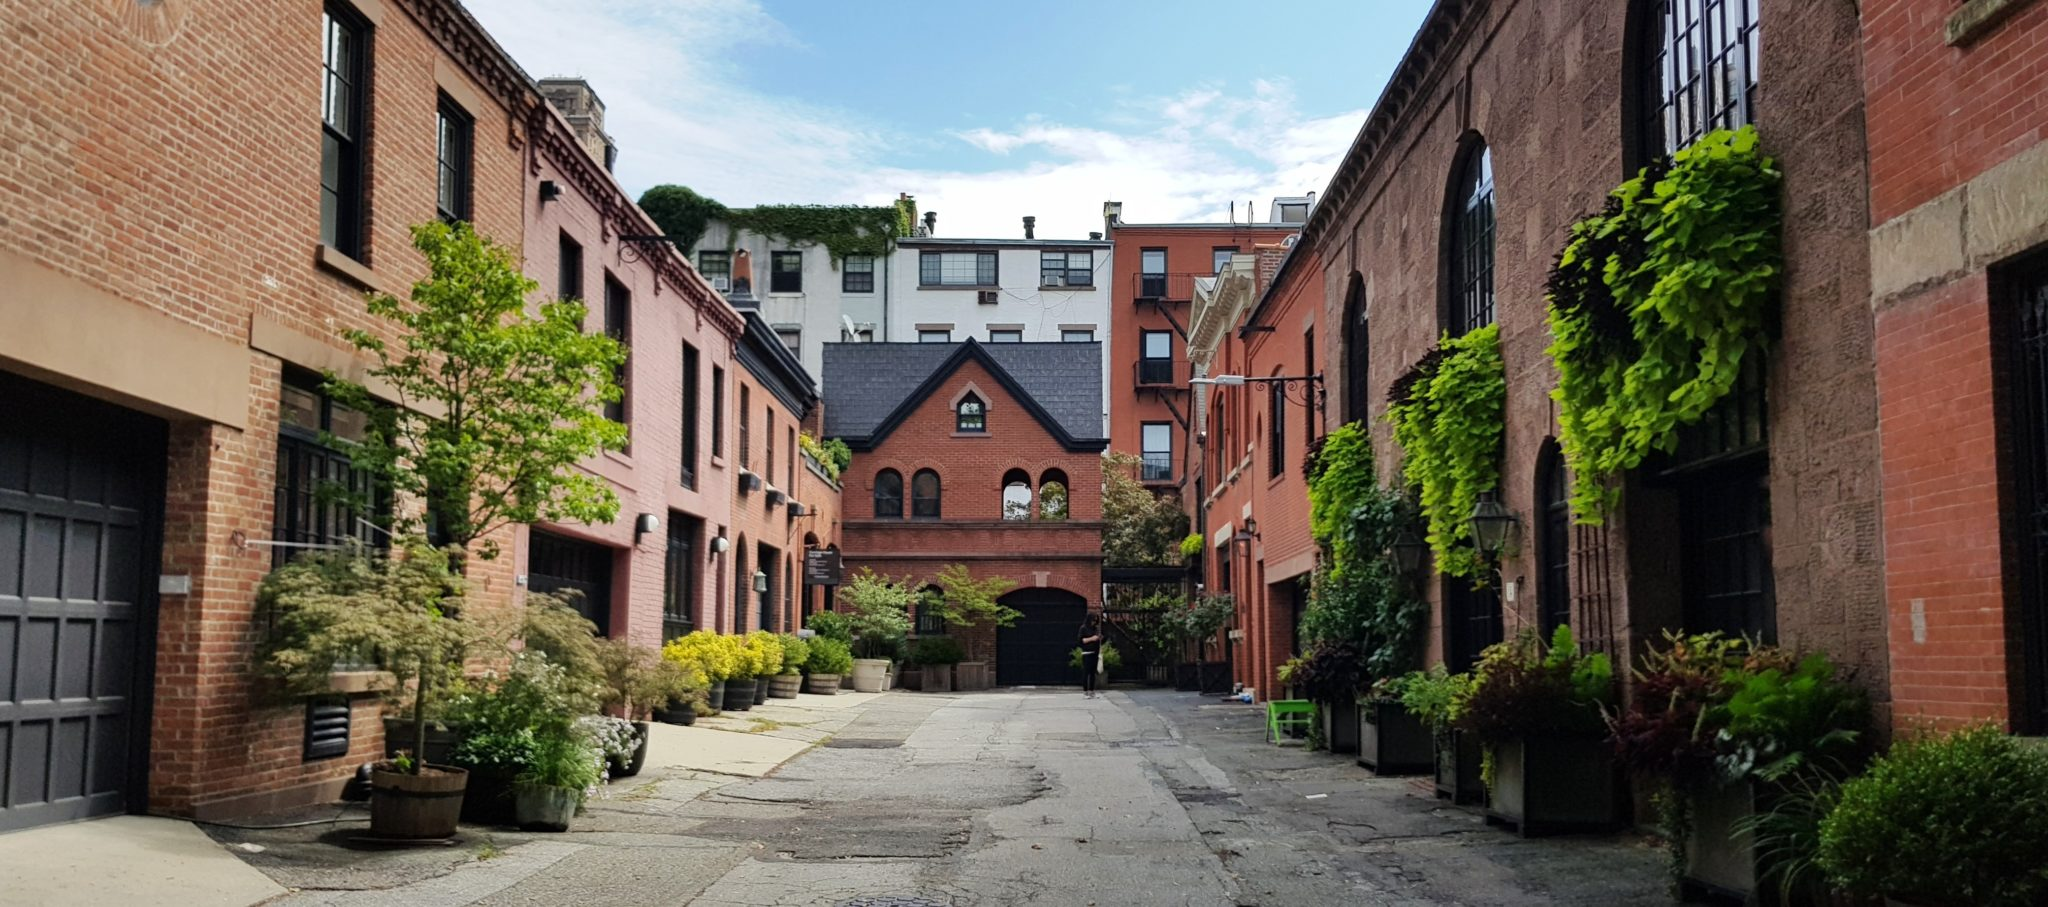 Grace Court Alley, calle oculta en Brooklyn Heights